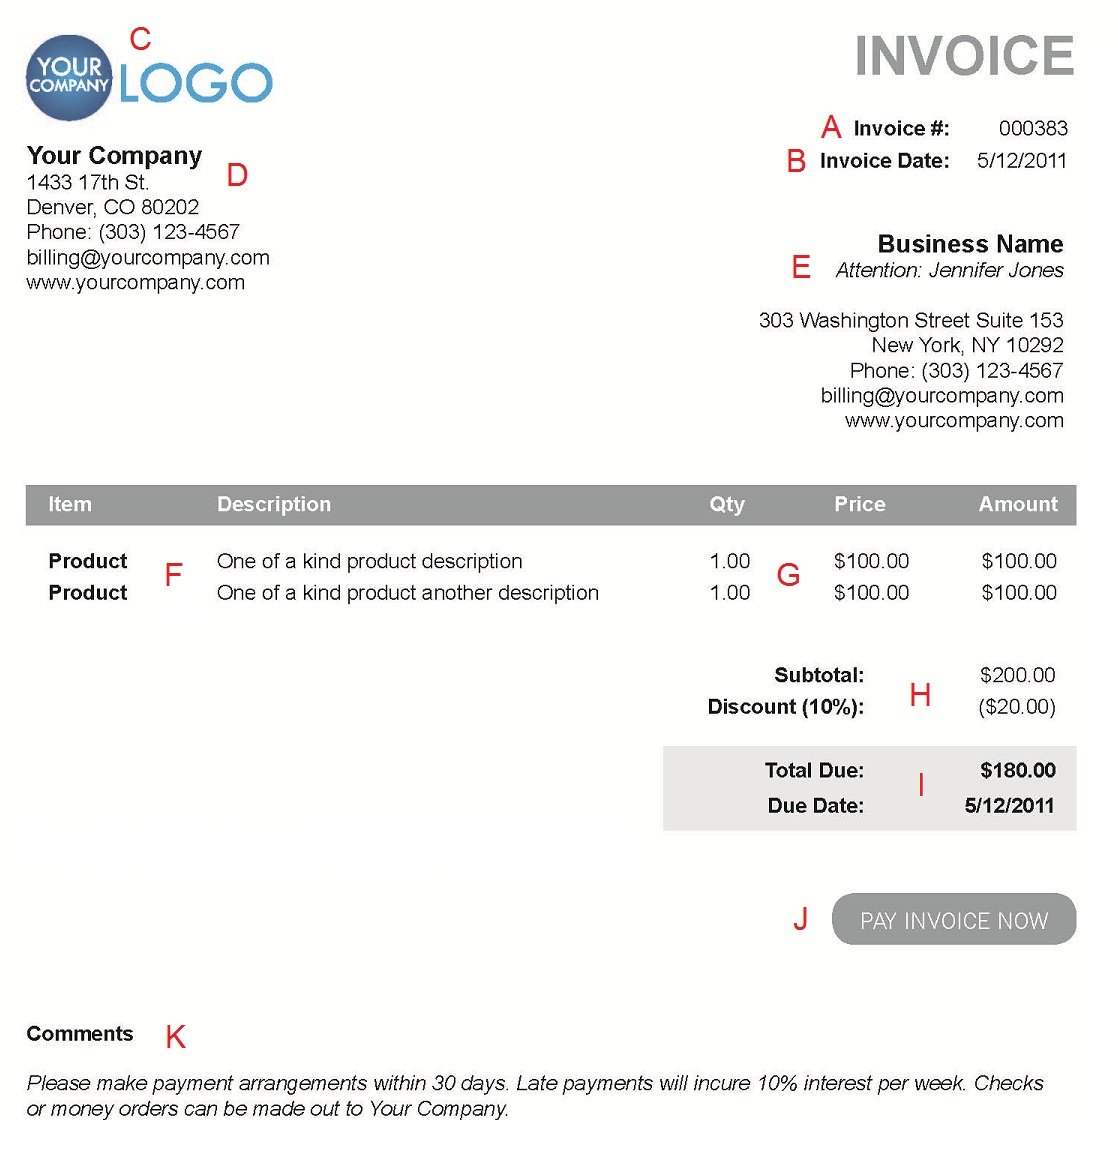 Usdgus  Pretty The  Different Sections Of An Electronic Payment Invoice With Gorgeous A  With Endearing Sample Invoice For Professional Services Also Medical Records Invoice In Addition Catering Invoice Sample And Sample Business Invoice As Well As Einvoicing Solutions Additionally Free Printable Business Invoices From Paysimplecom With Usdgus  Gorgeous The  Different Sections Of An Electronic Payment Invoice With Endearing A  And Pretty Sample Invoice For Professional Services Also Medical Records Invoice In Addition Catering Invoice Sample From Paysimplecom